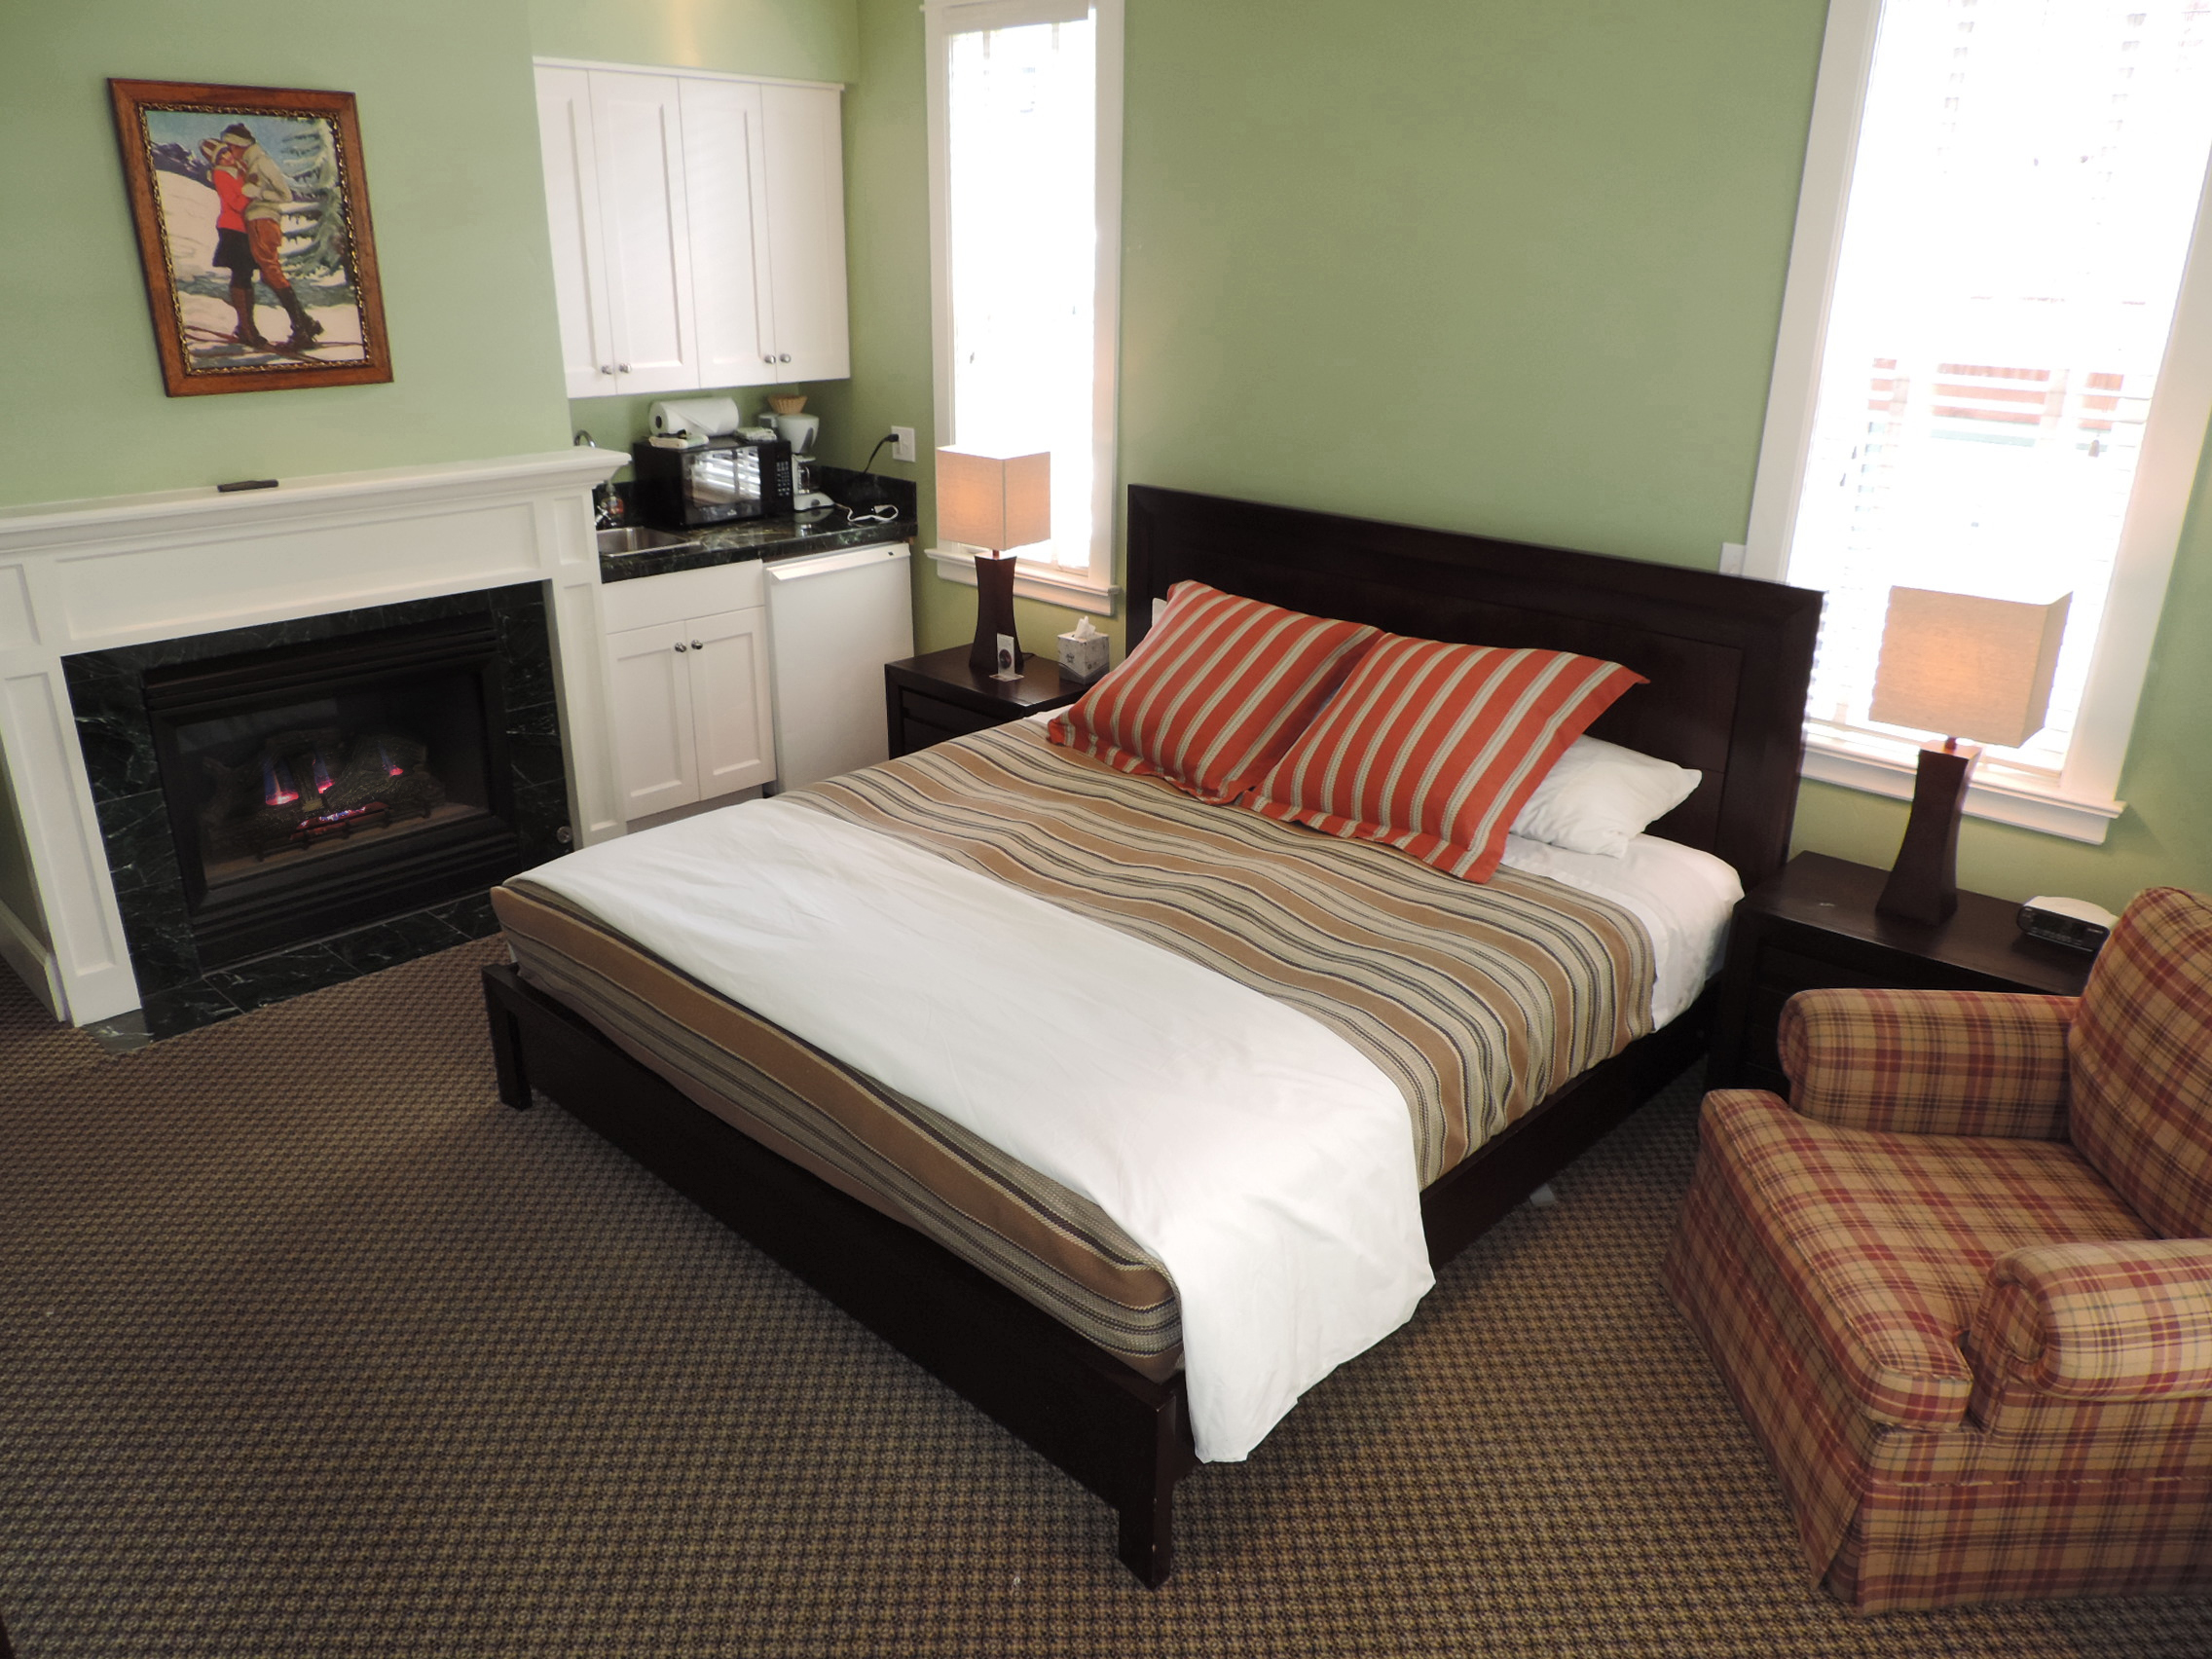 Montana Placer Inn - Room 3 - King Bed with Private Bath